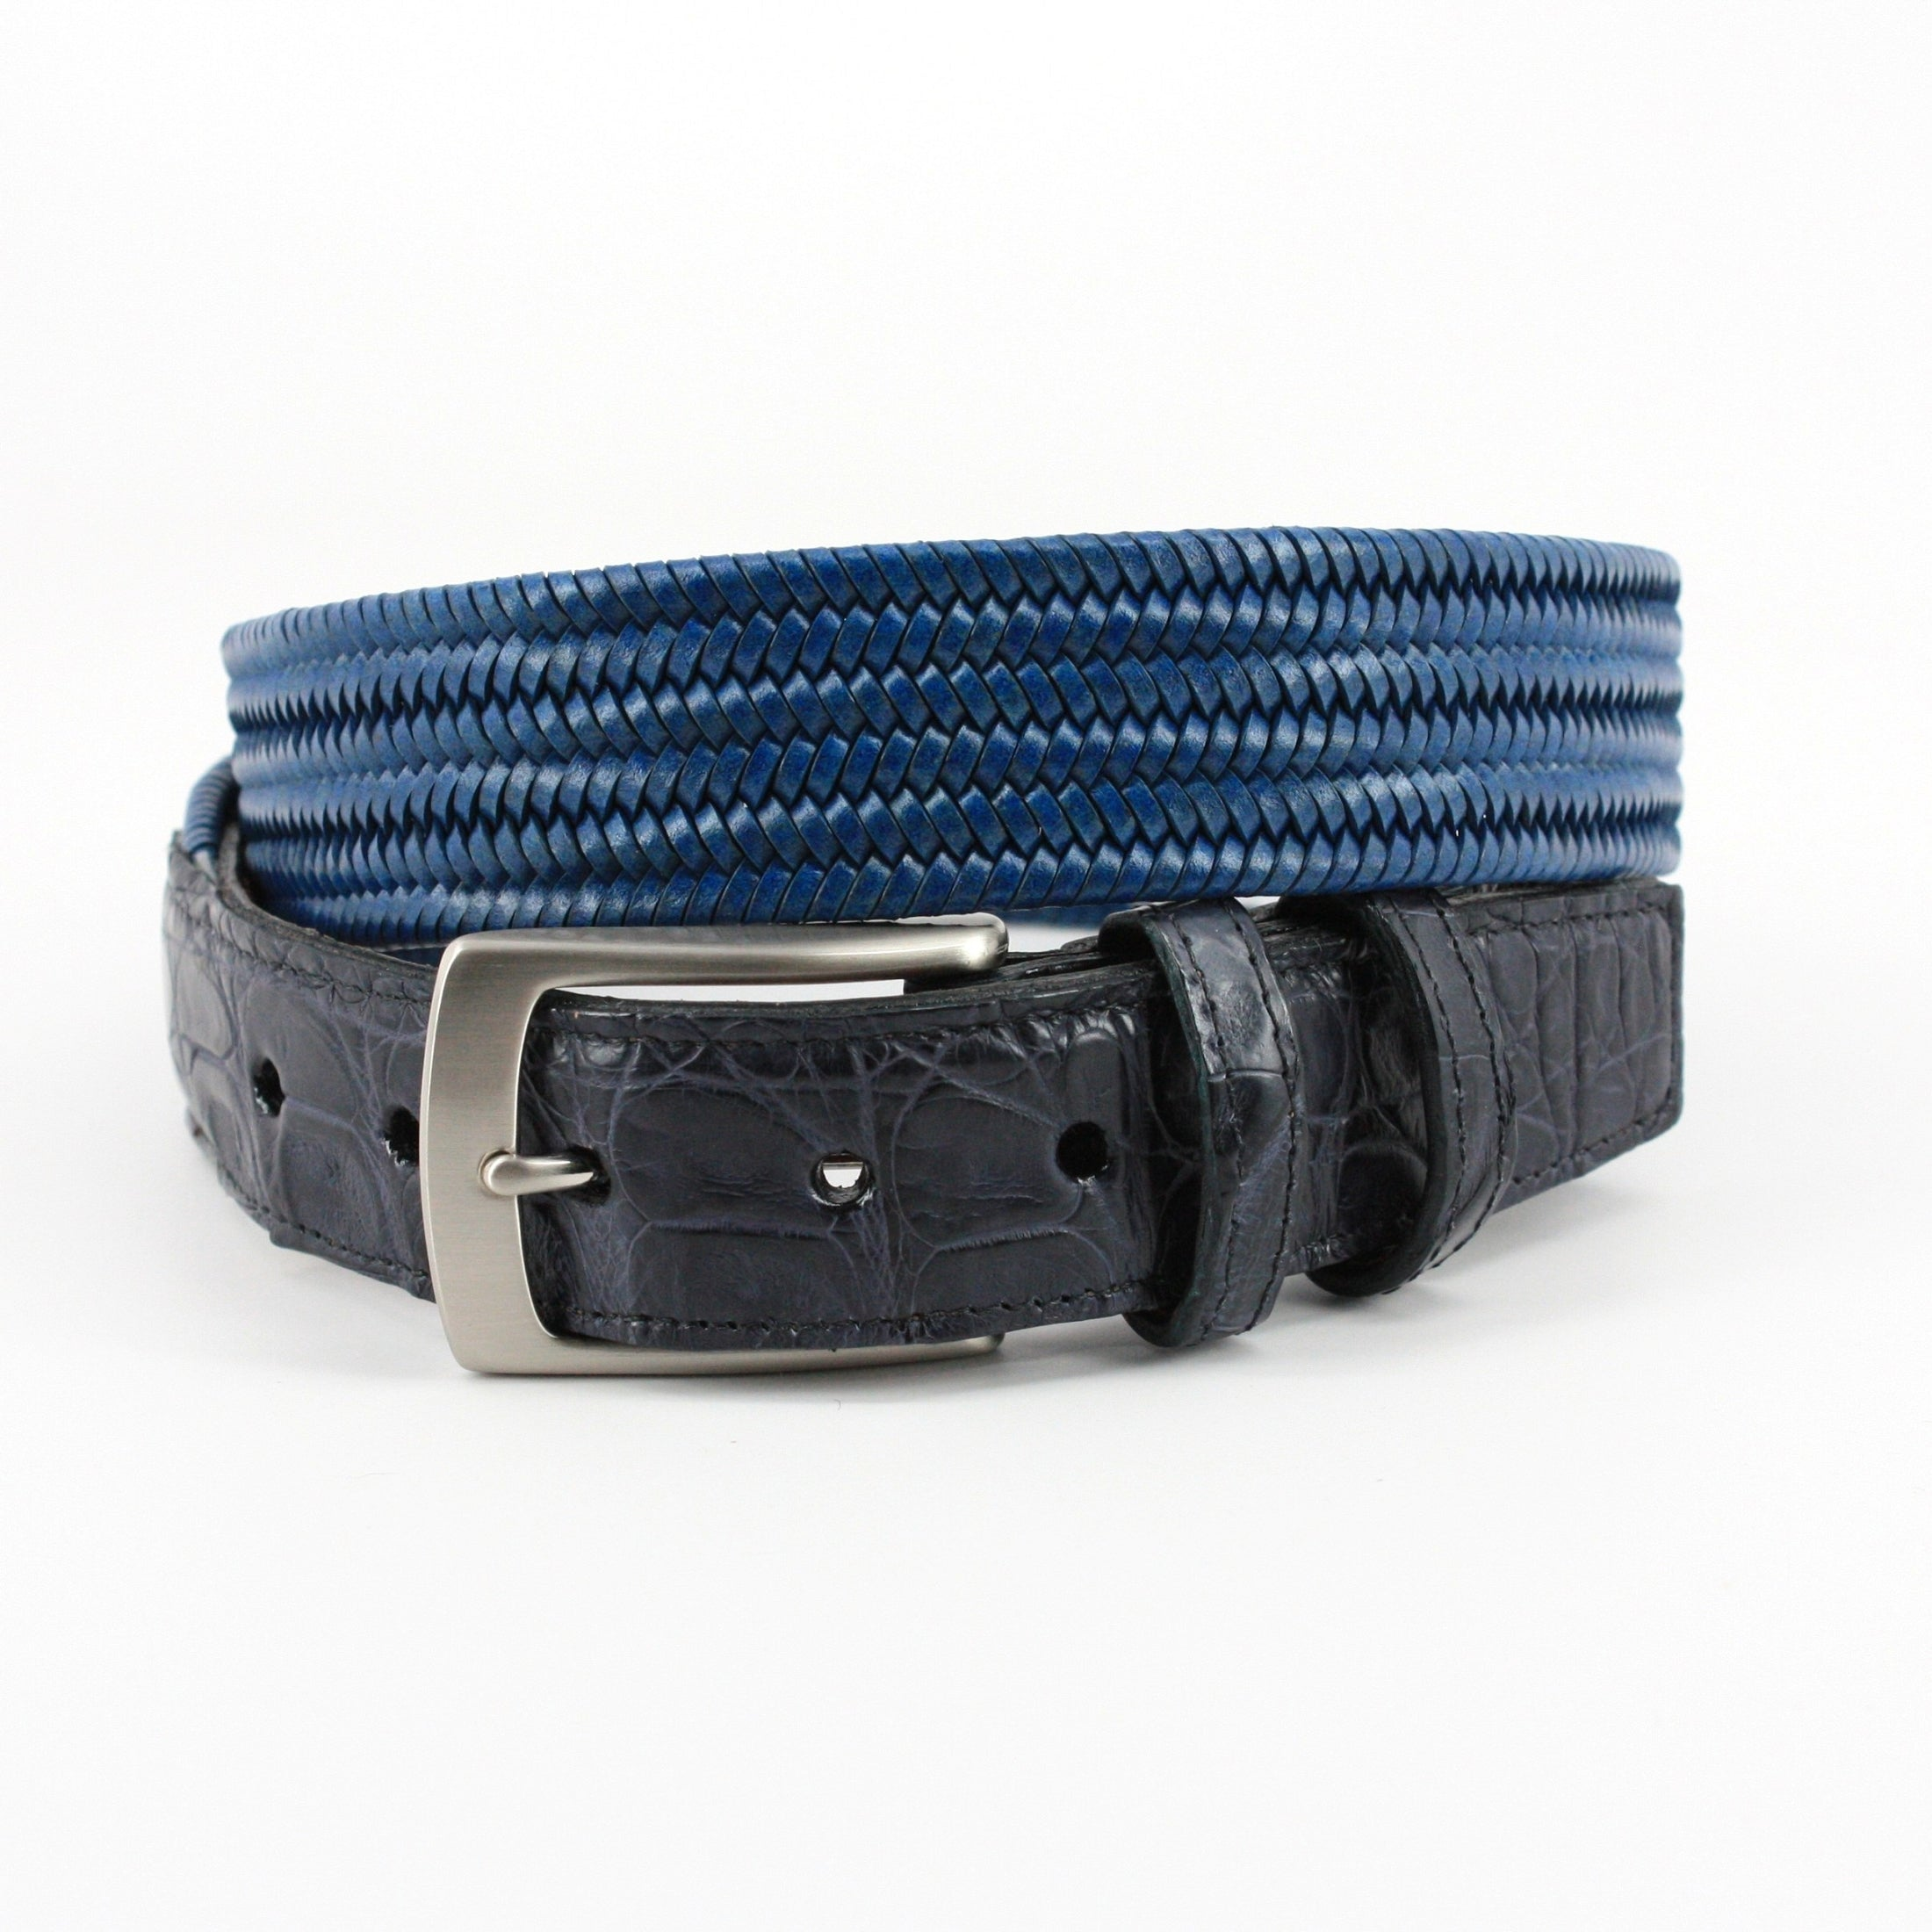 Italian Woven Stretch Leather w/ Genuine Caiman Tabs Belt - Blue,BELT,Gent Row, | GentRow.com